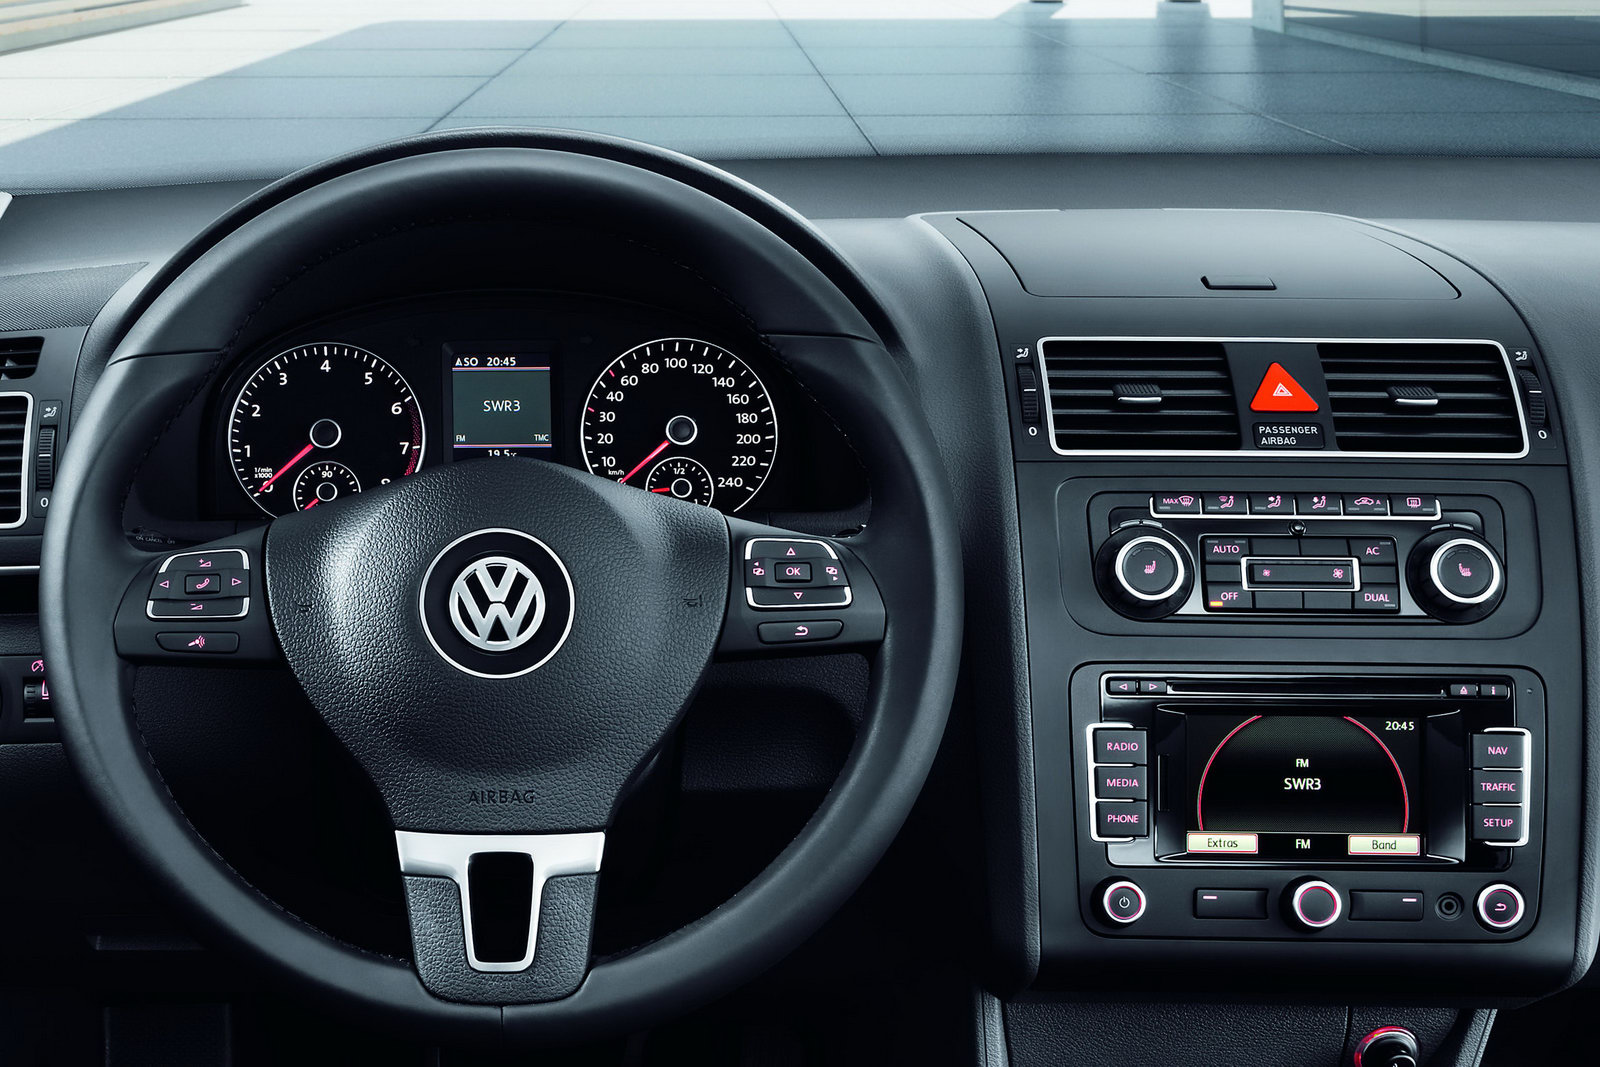 2011 volkswagen touran wallpaper for Interior touran